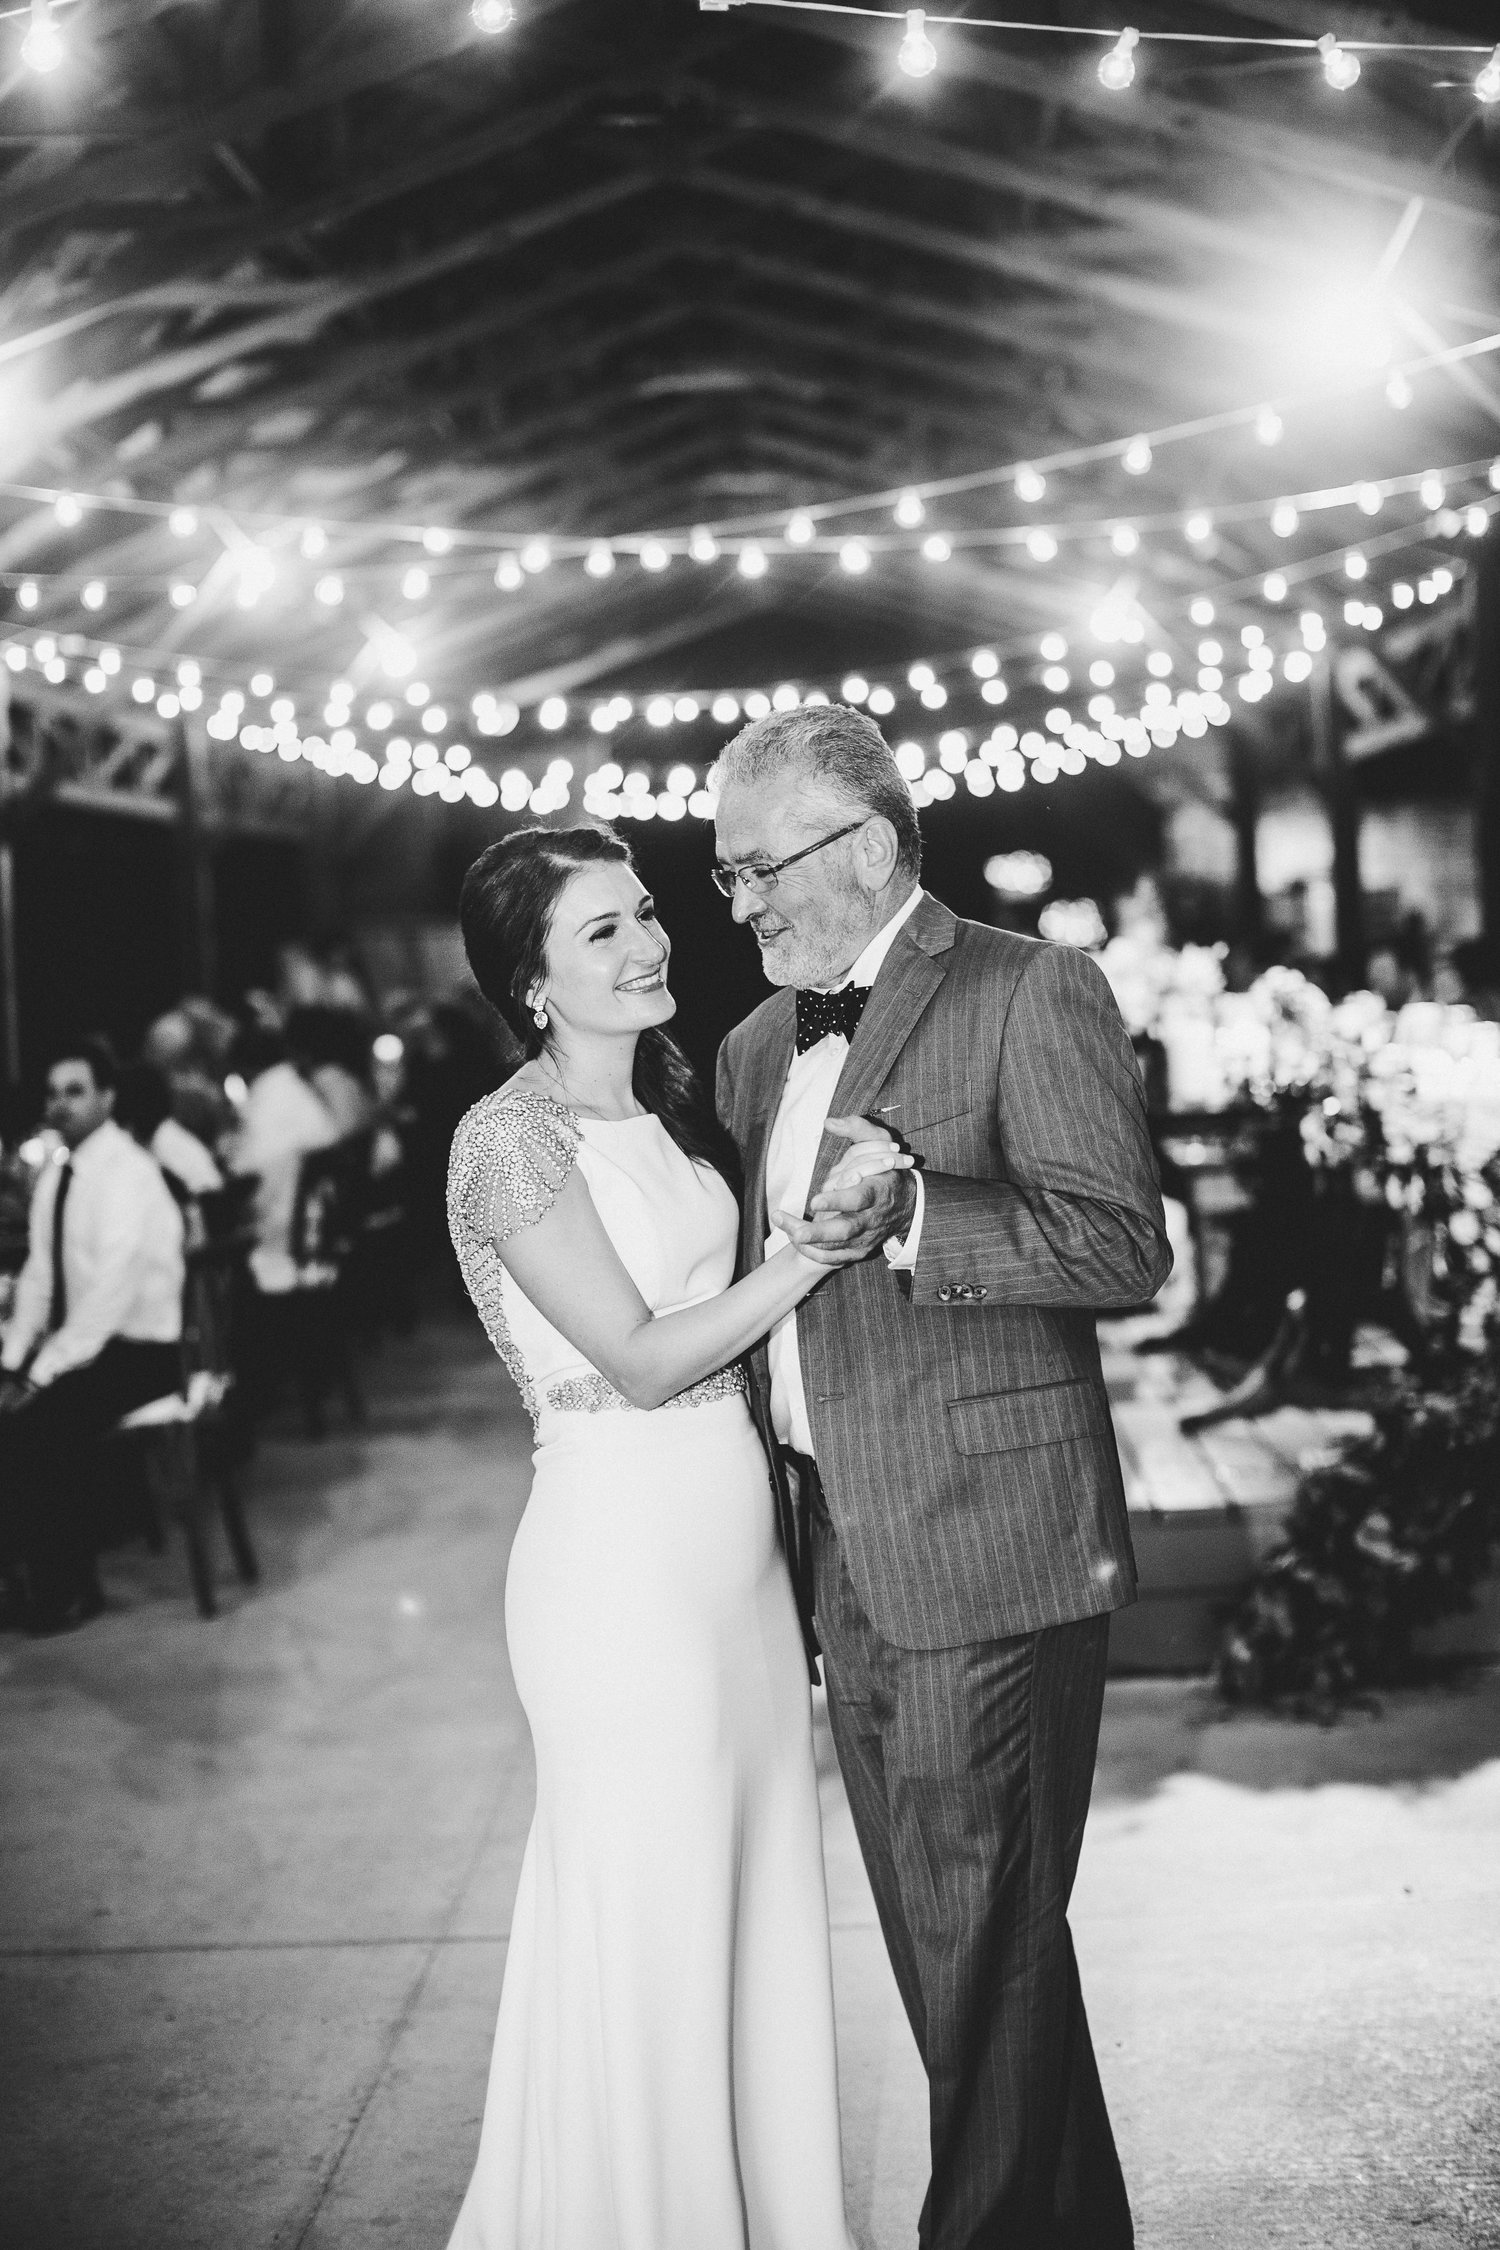 izzy-hudgins-photography-savannah-wedding-ivory-and-beau-bridal-boutique-savannah-wedding-planner-colonial-house-of-flowers-forsyth-park-wedding-old-fort-jackson-wedding-squidwed-films-savannah-boutique-savannah-weddings-59.jpg